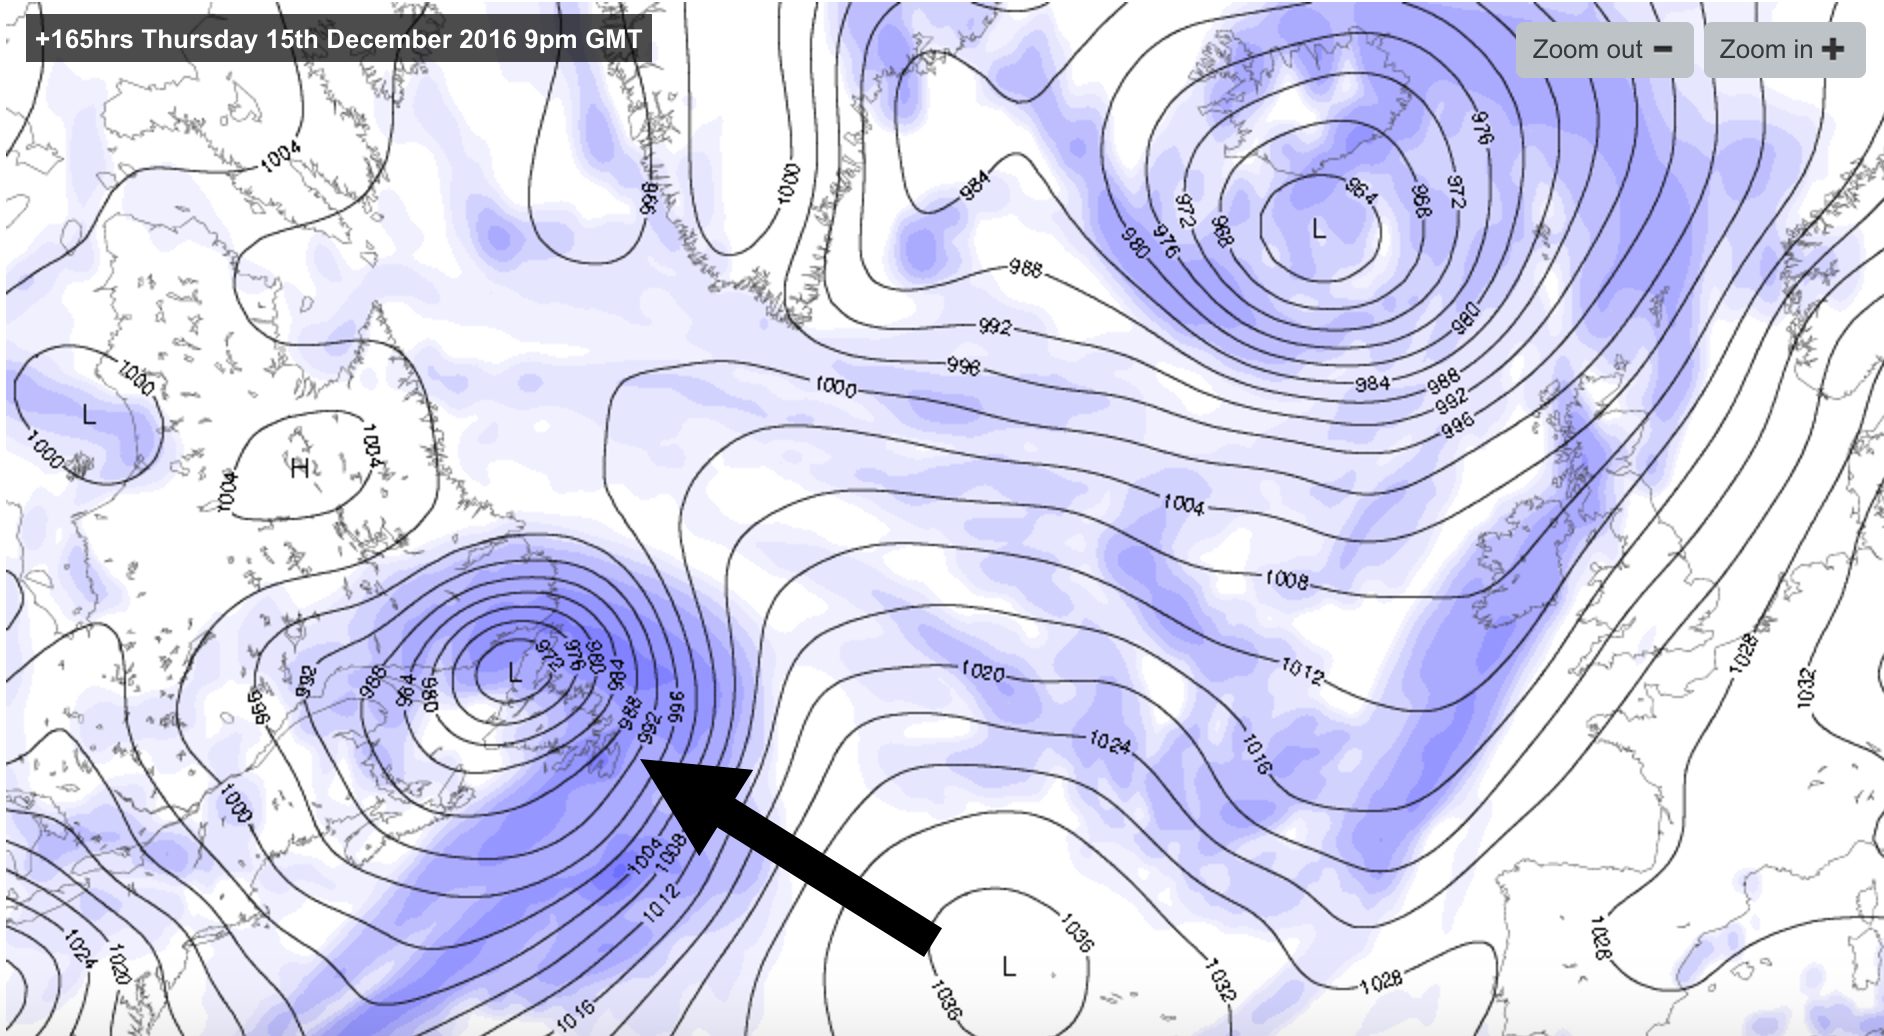 The initial low pressure system over Canada